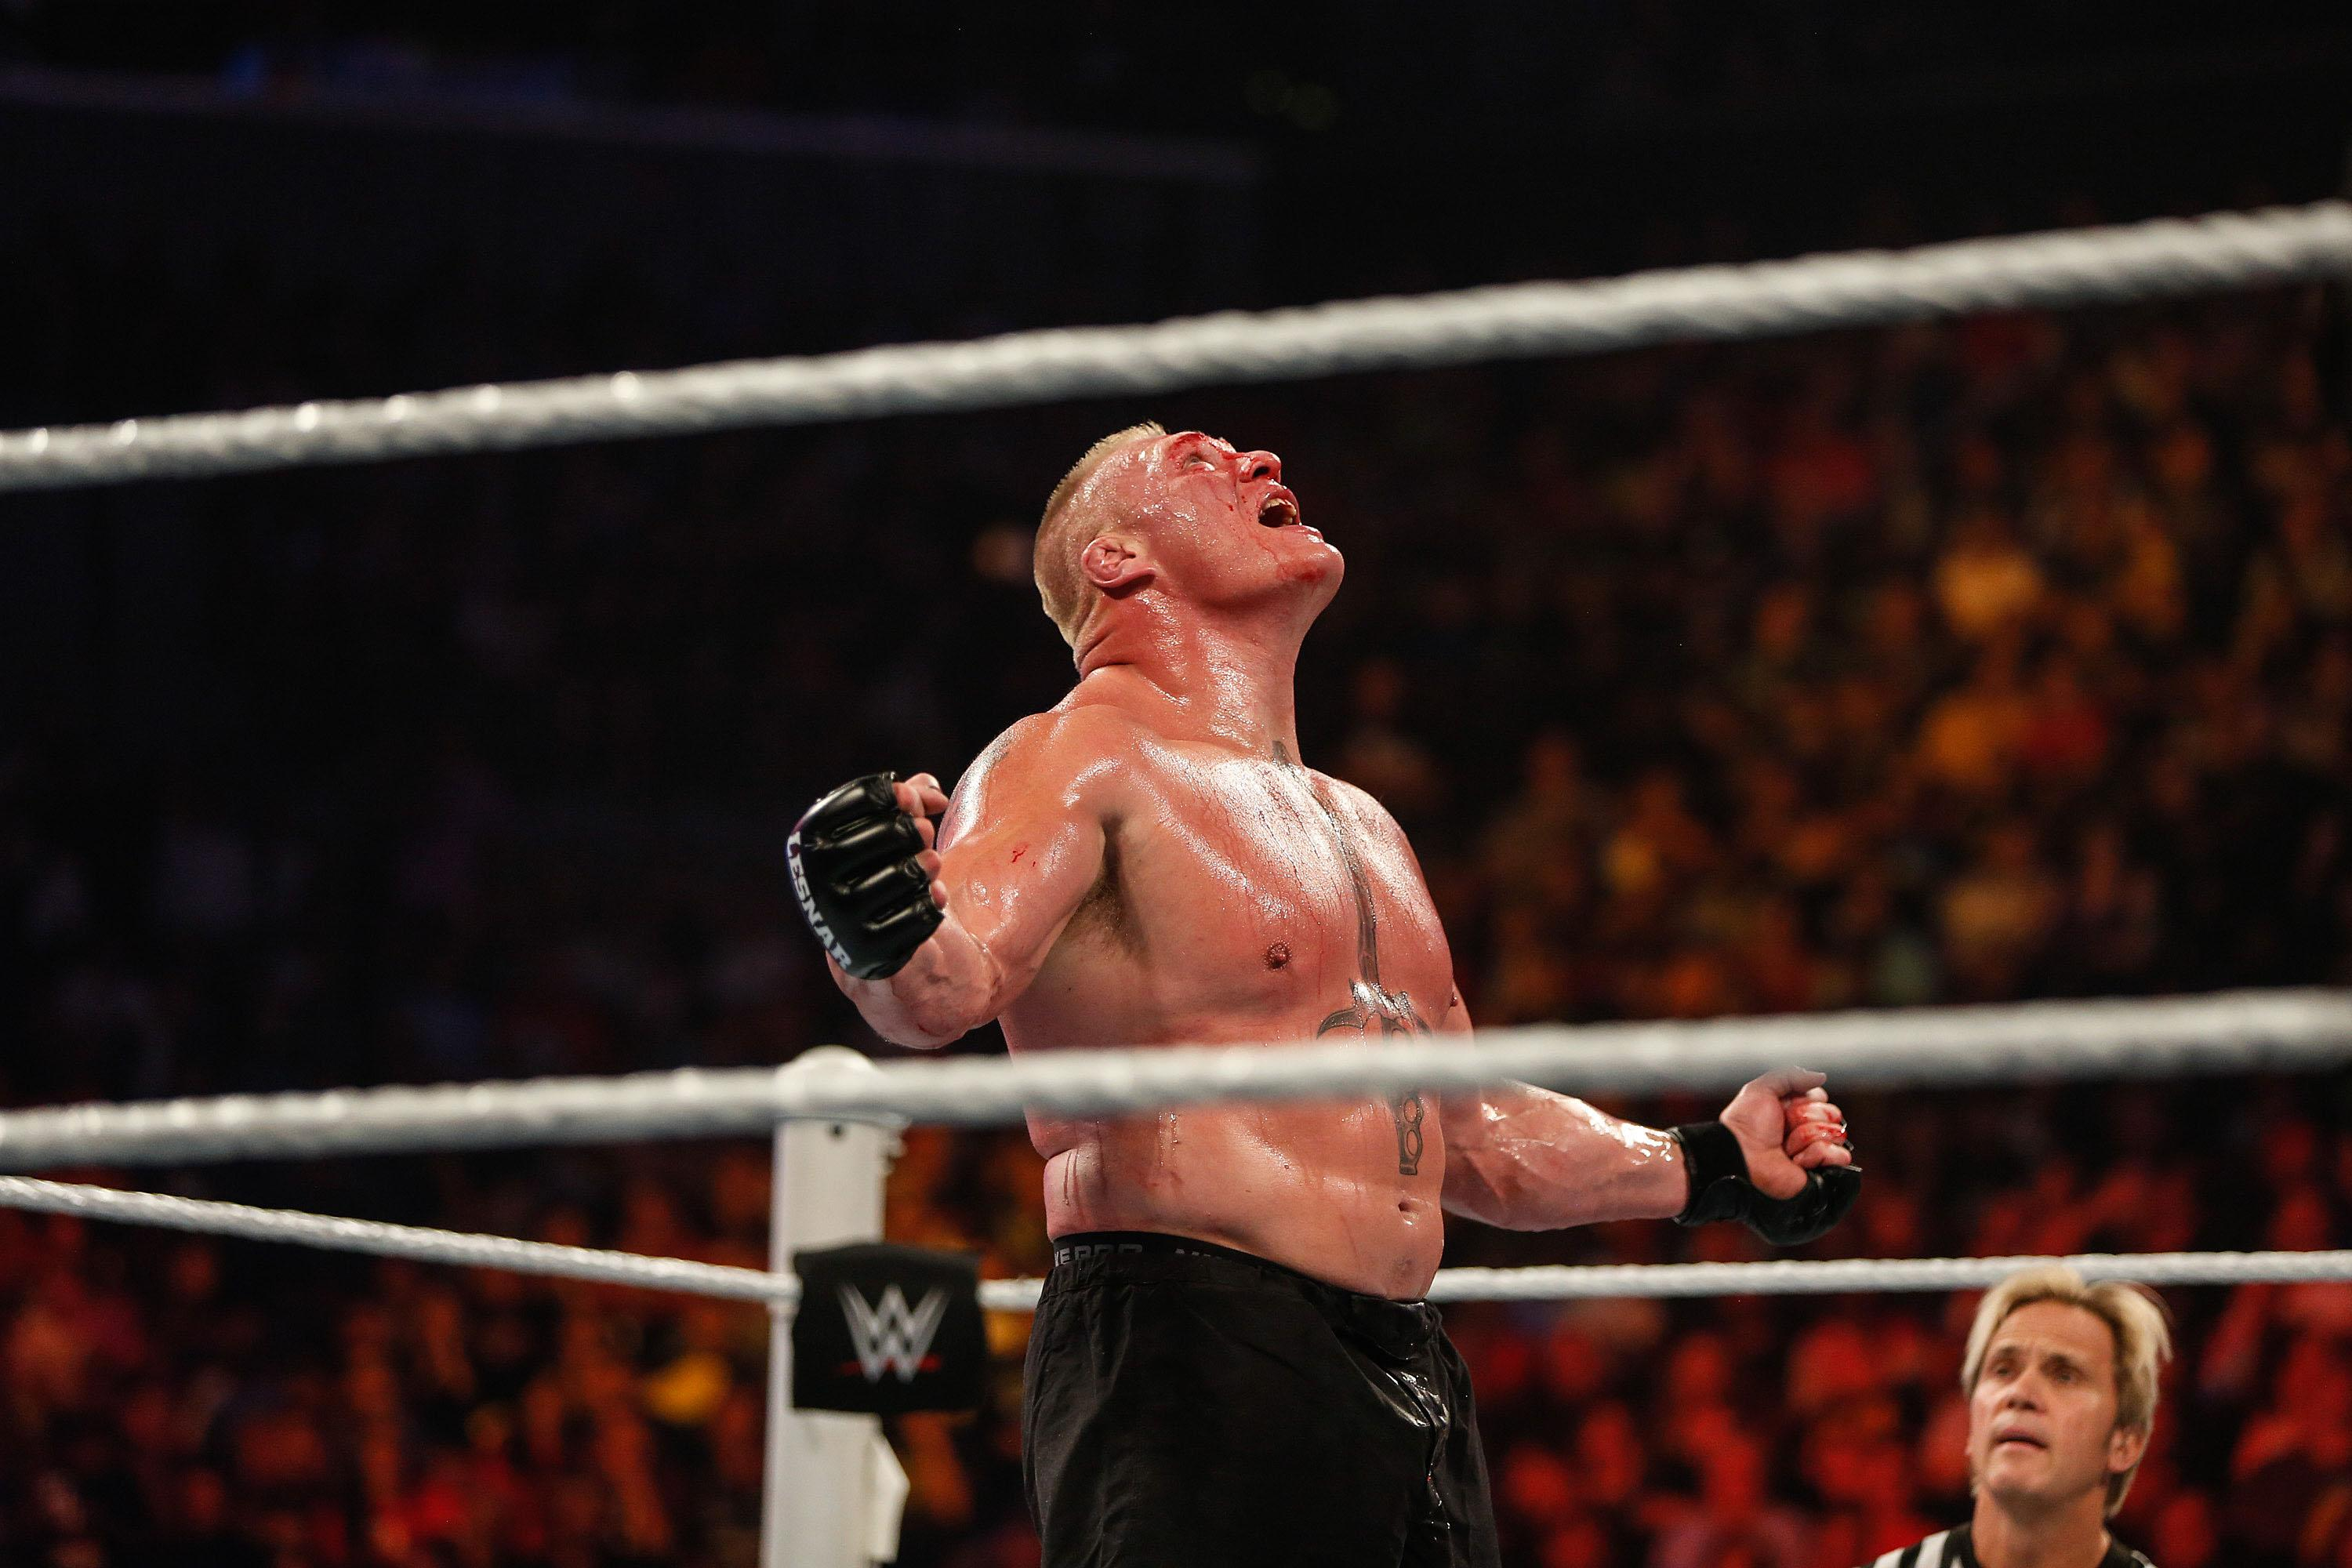 Brock Lesnar Announced For 2017 Royal Rumble Match